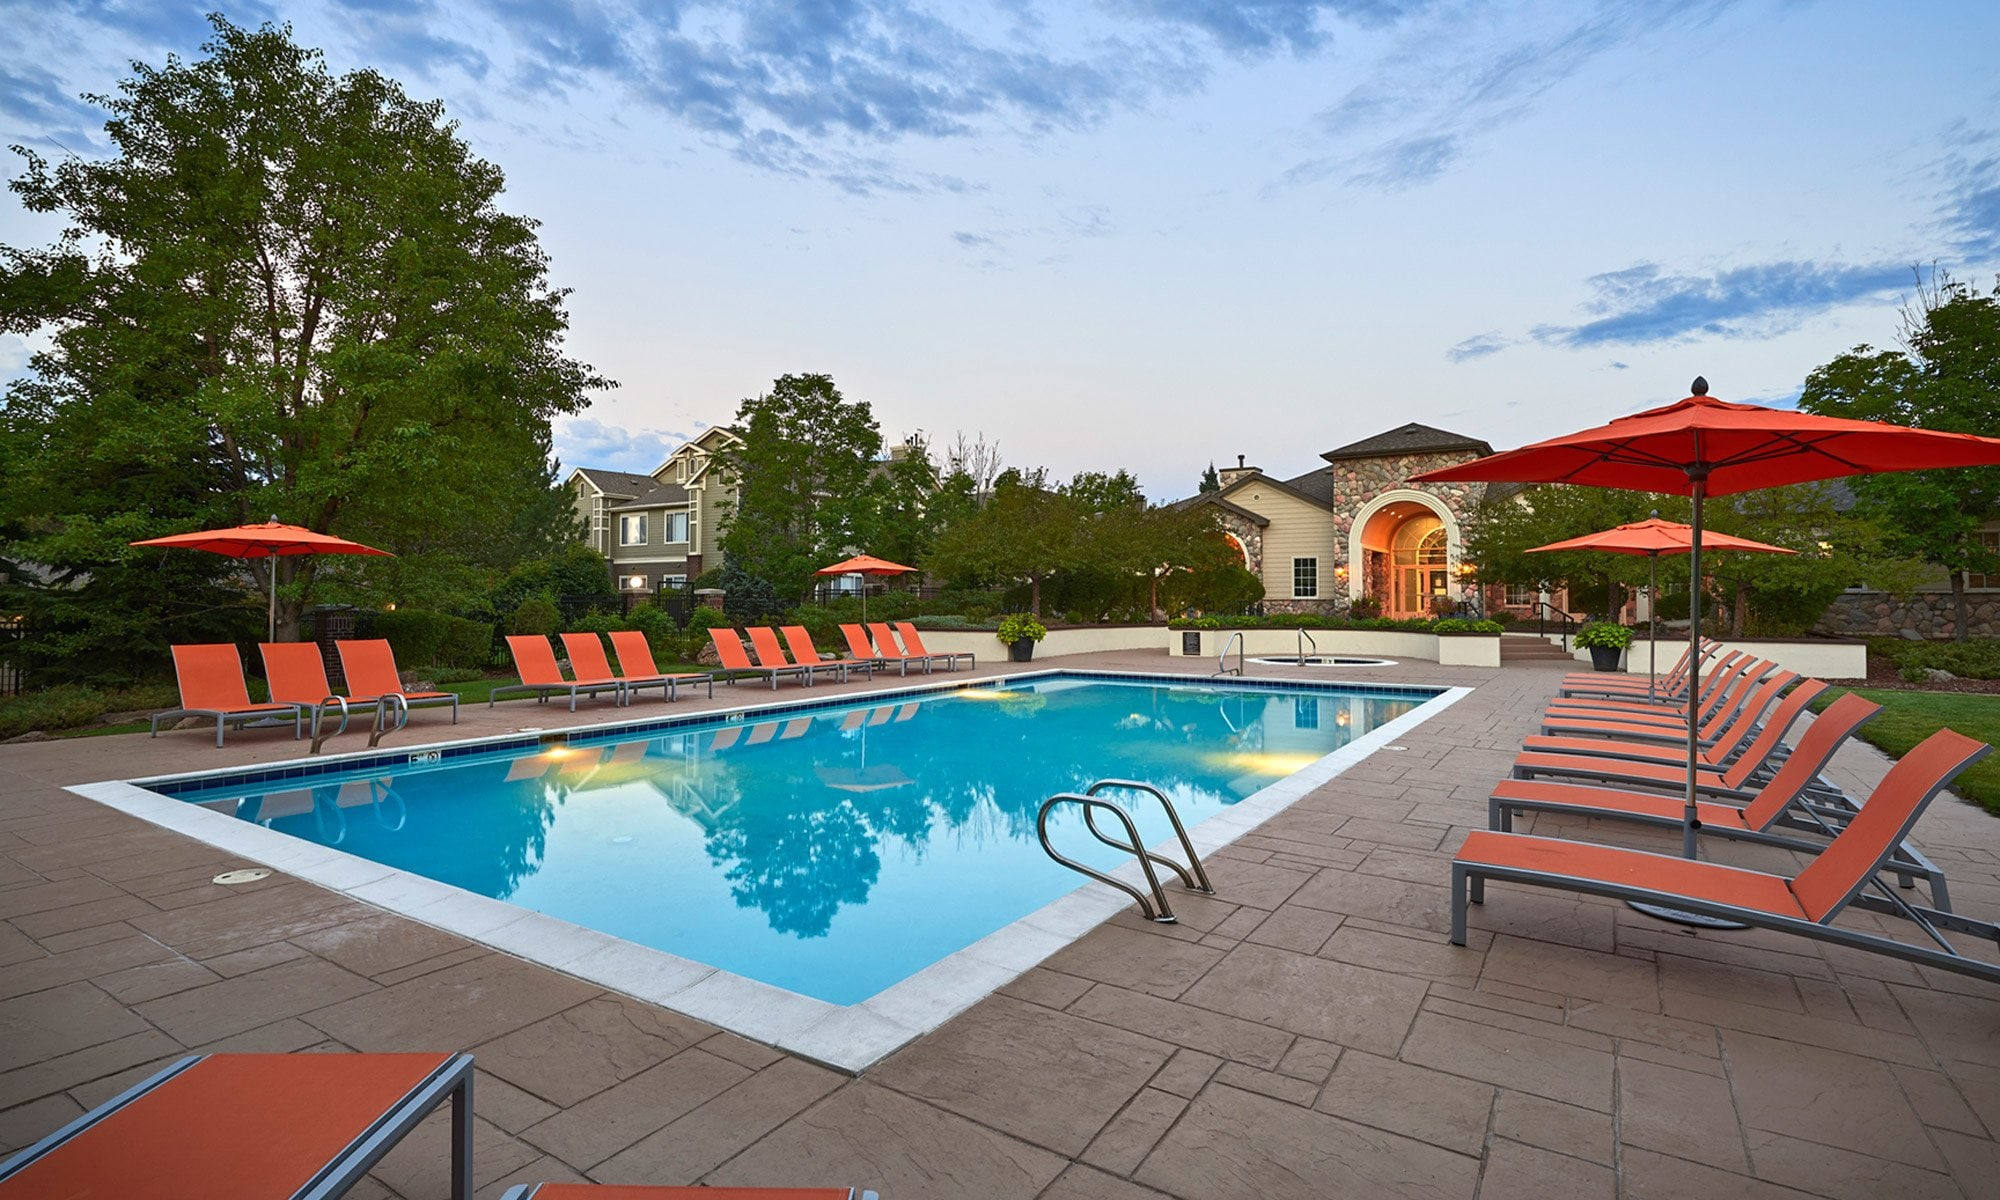 Sunset pool view with lounge chairs in Denver, CO